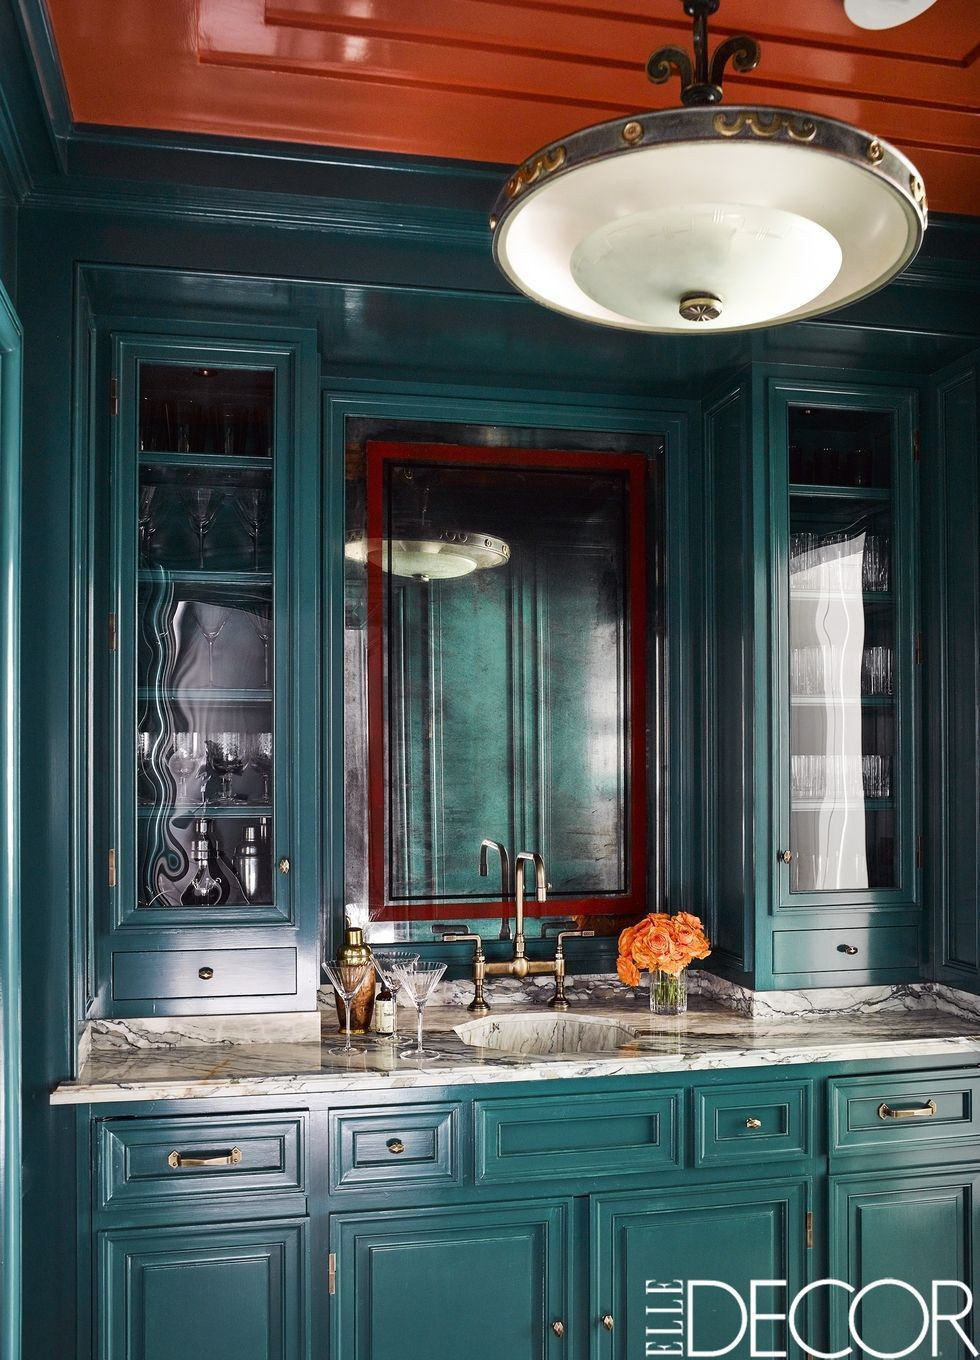 40 Blue Kitchen Ideas - Lovely Ways to Use Blue Cabinets and Decor in Kitchen Design : decor kitchen cabinet - hauntedcathouse.org